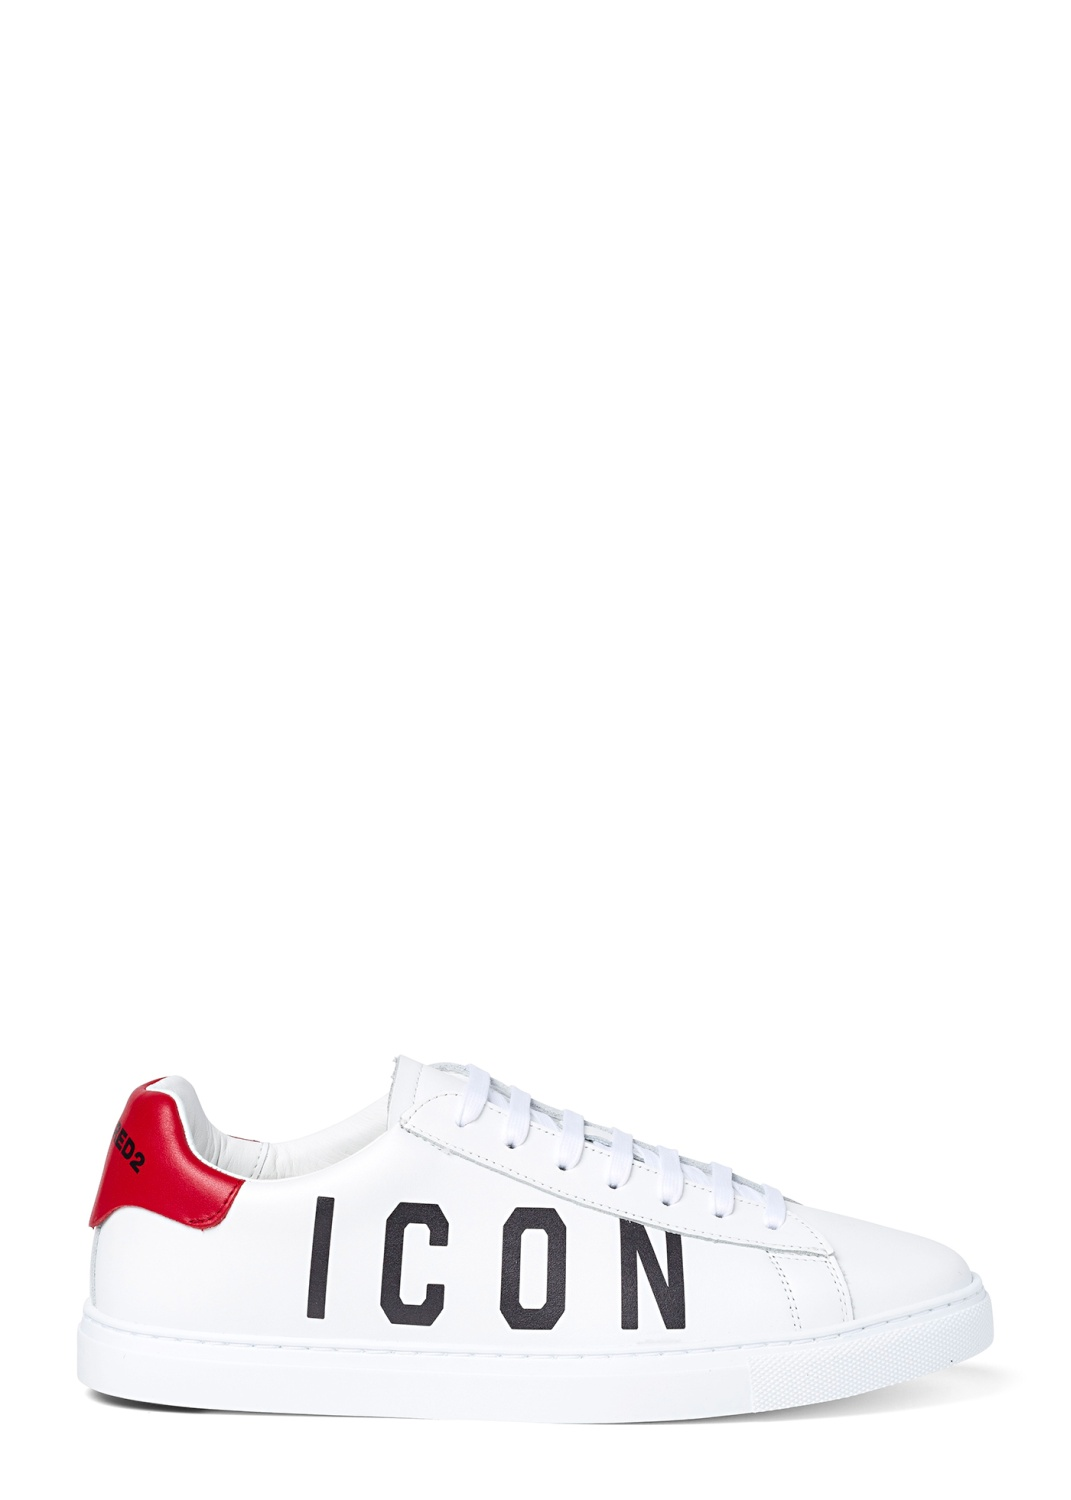 ICON NEW TENNIS SNEAKER image number 0